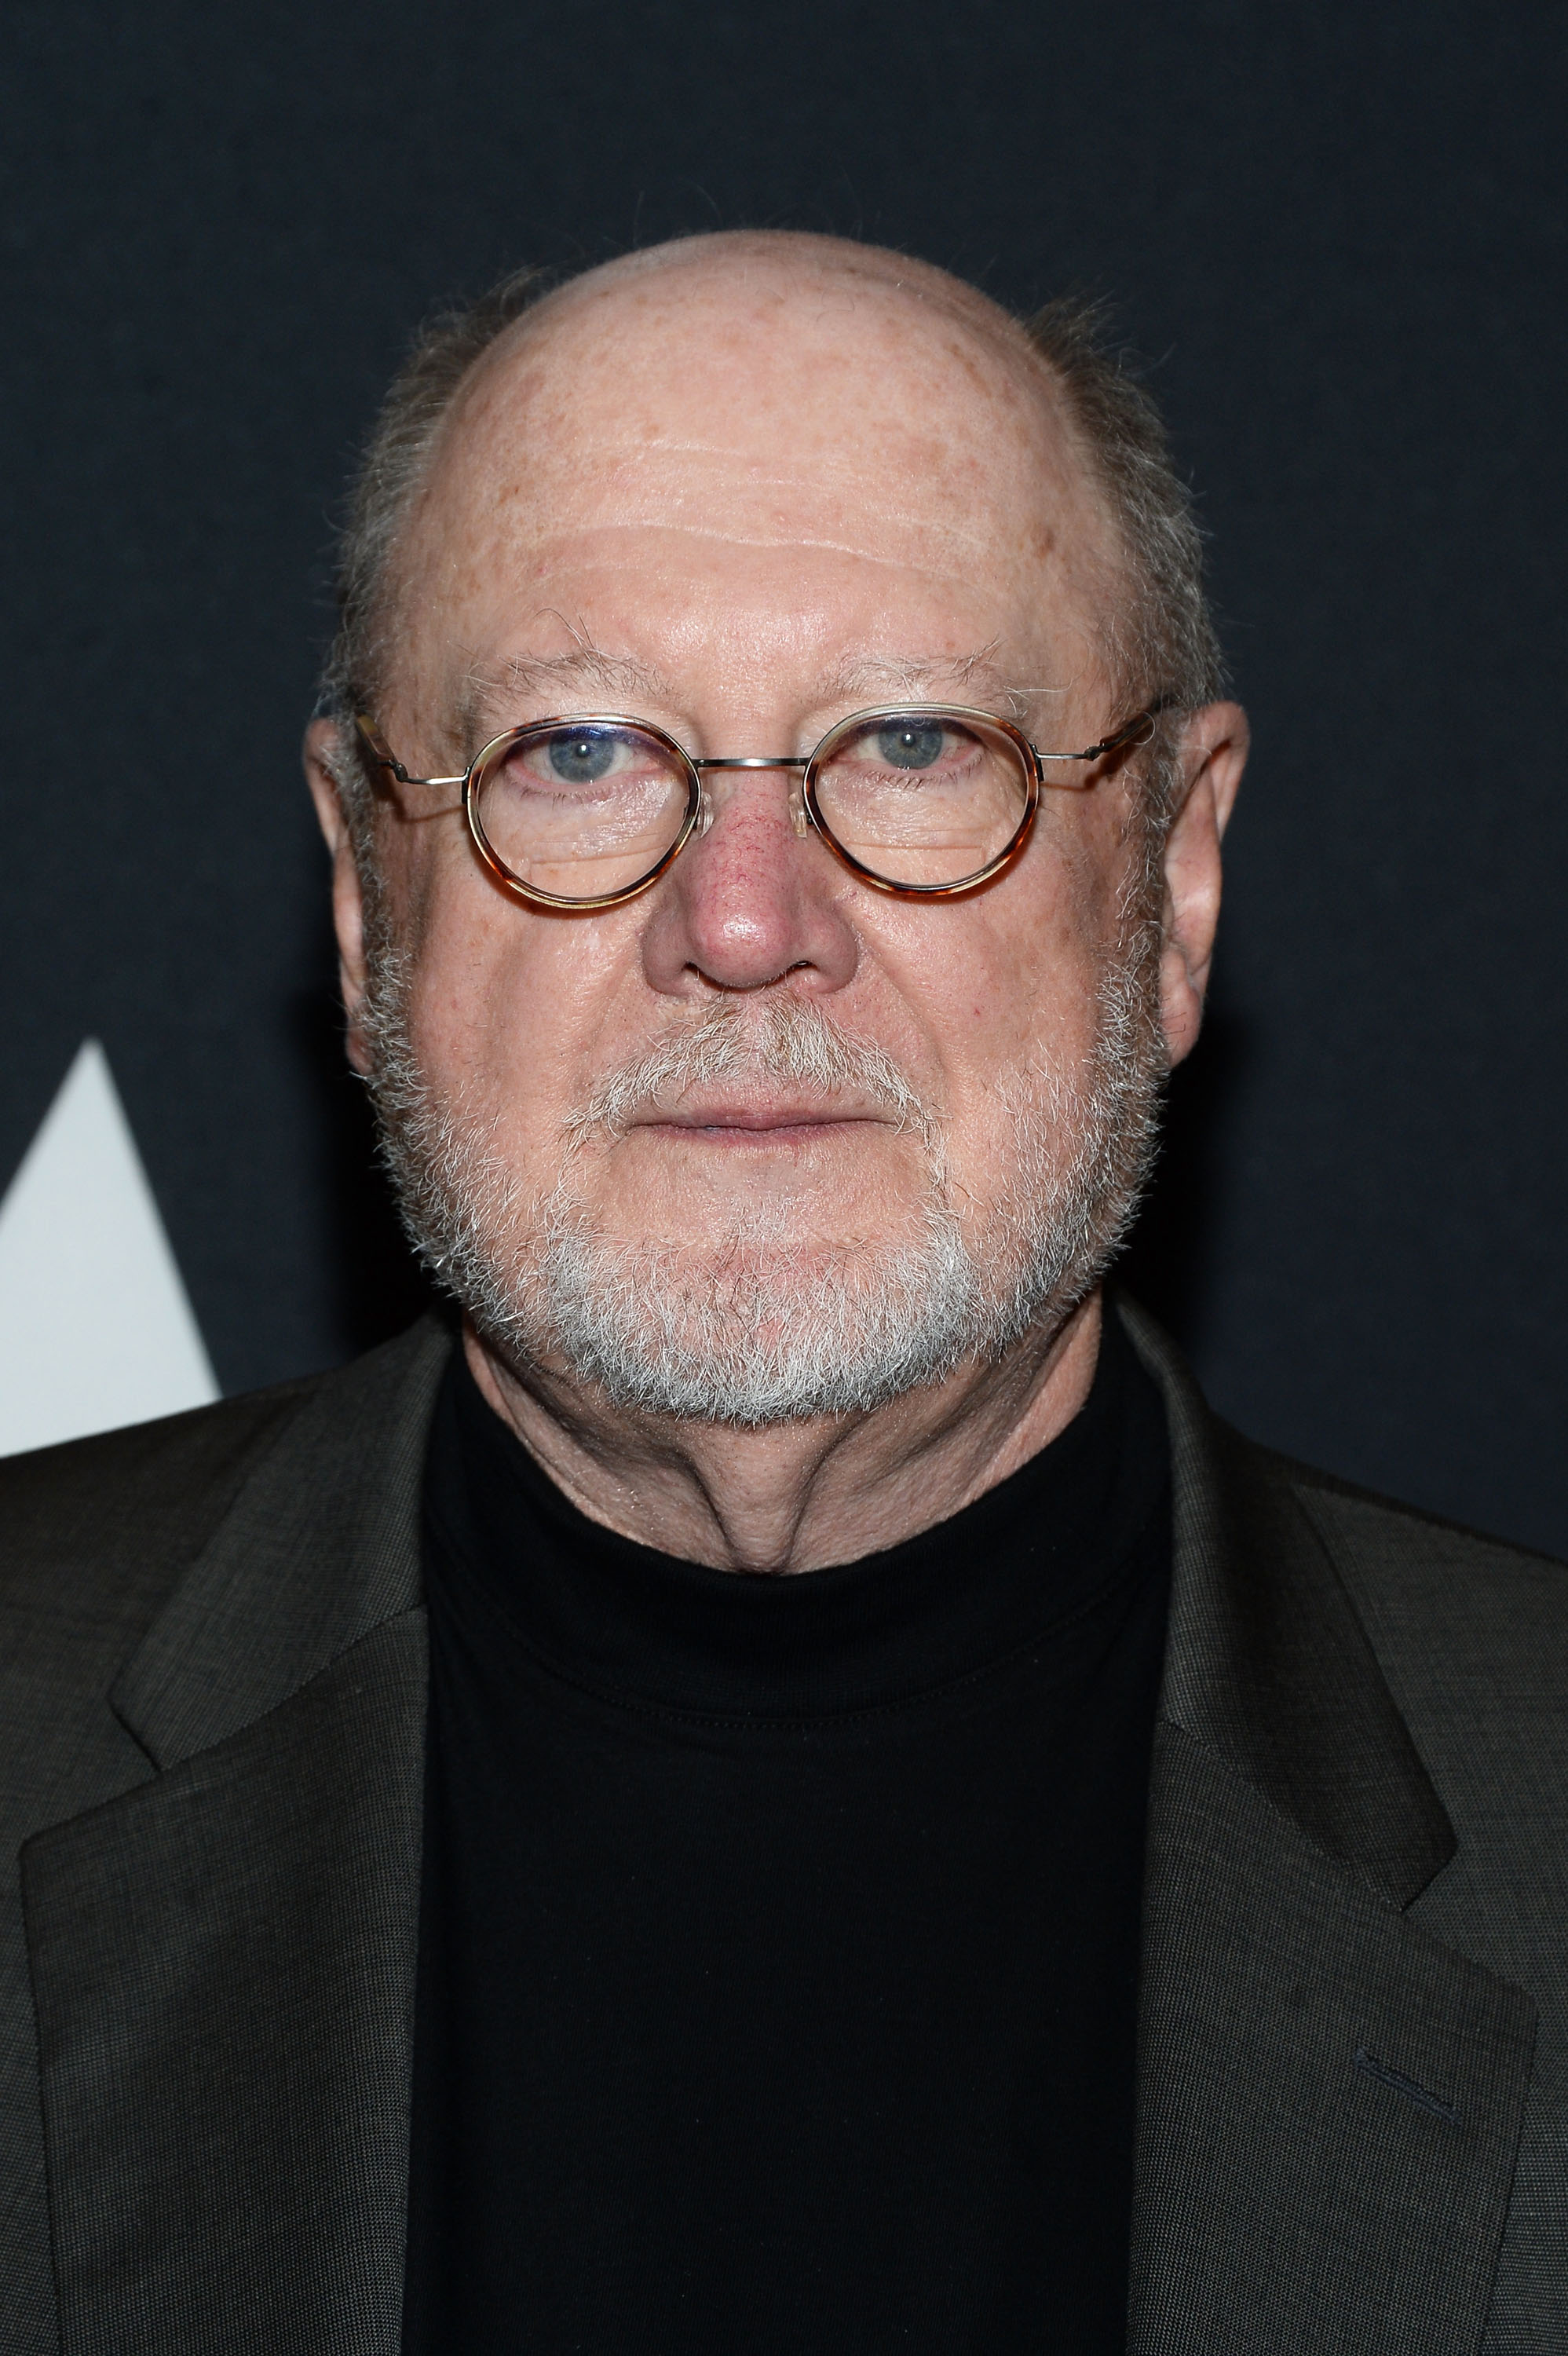 Actor David Ogden Stiers attends the 25th Anniversary screening of 'Beauty and the Beast': A Marc Davis Celebration of Animation at Samuel Goldwyn Theater on May 9, 2016 in Beverly Hills, California.